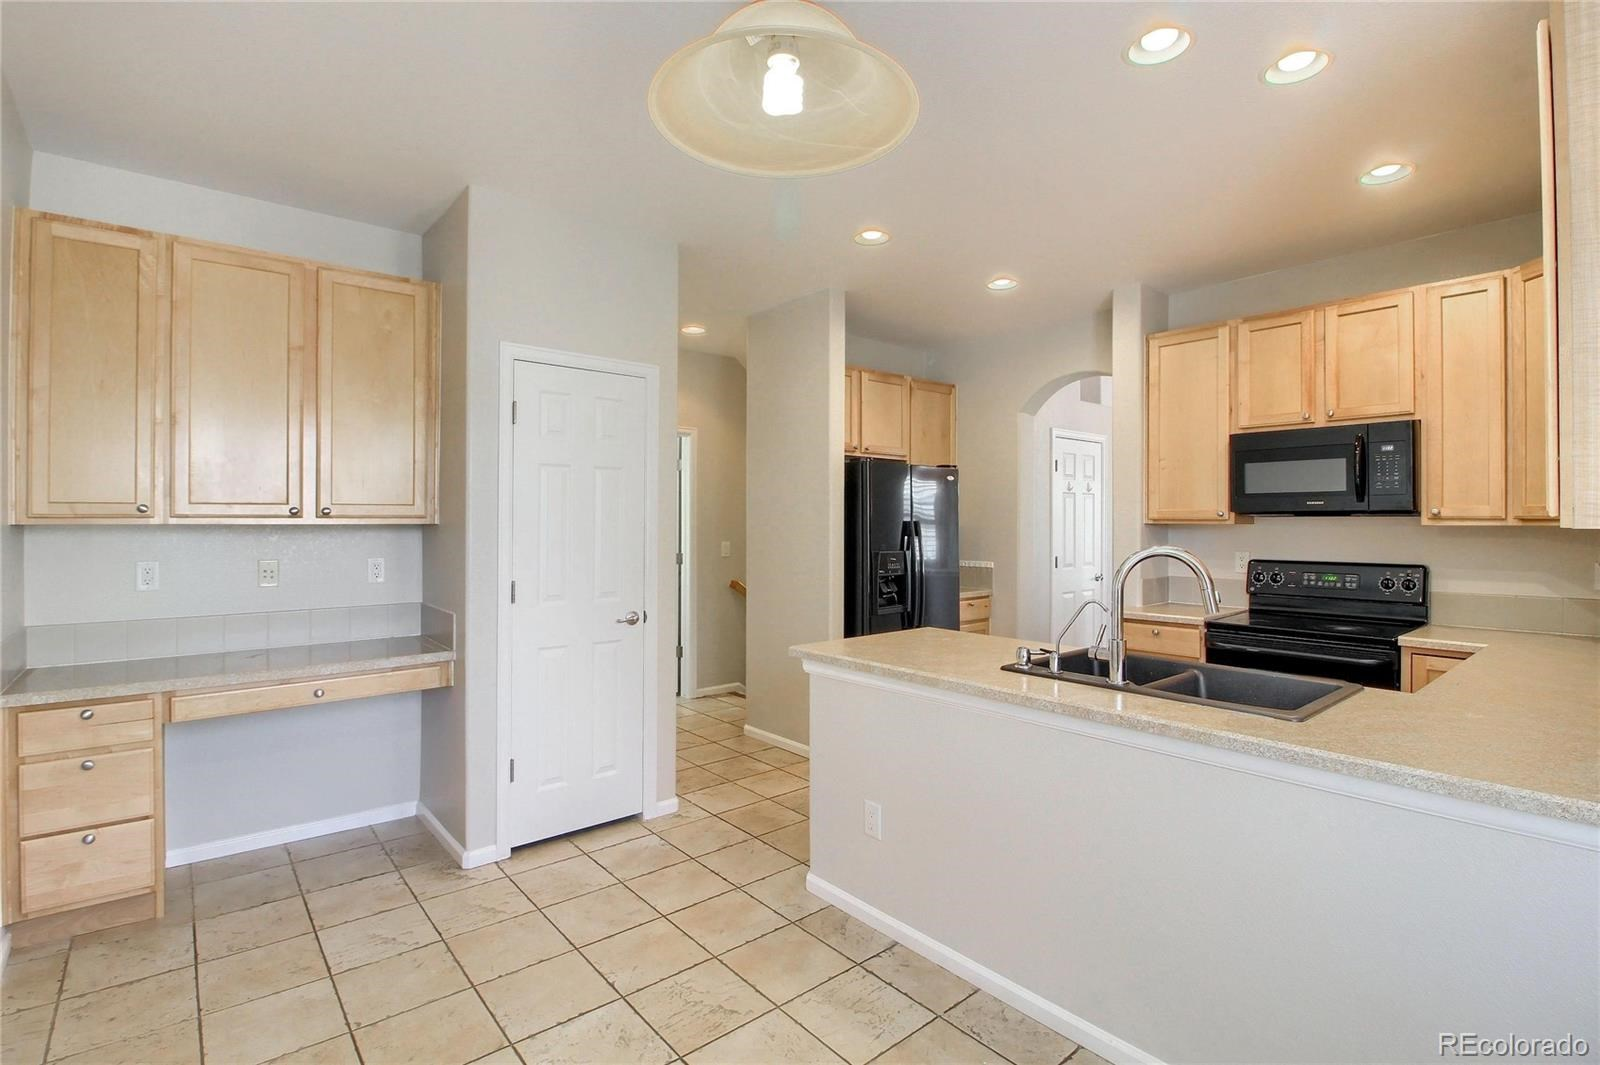 MLS# 8597792 - 12 - 13787 Stone Circle #101, Broomfield, CO 80023